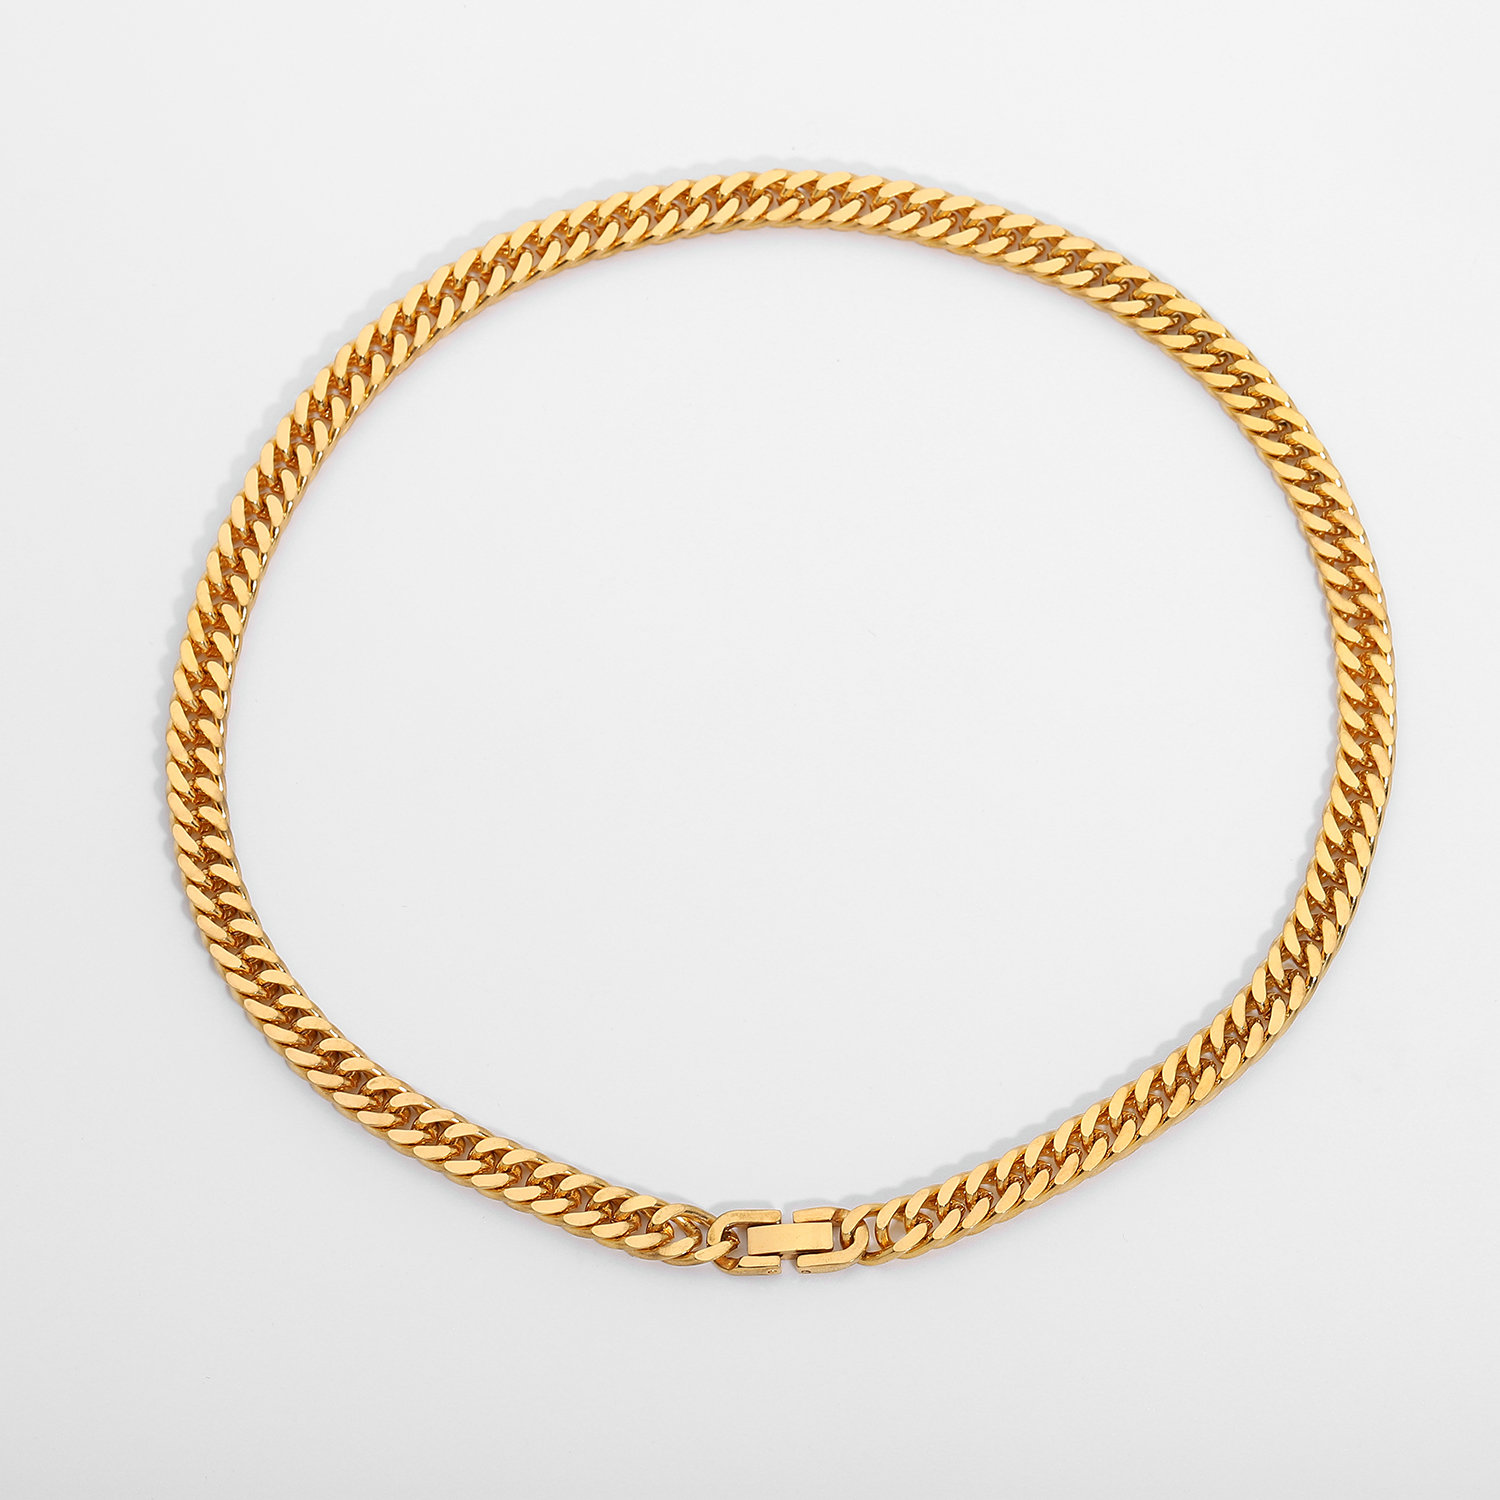 7.3mm Chunky gold Cuban Chain Necklace for women 18K Gold Plated Stainless Steel Miami Link Chain Choker Necklace